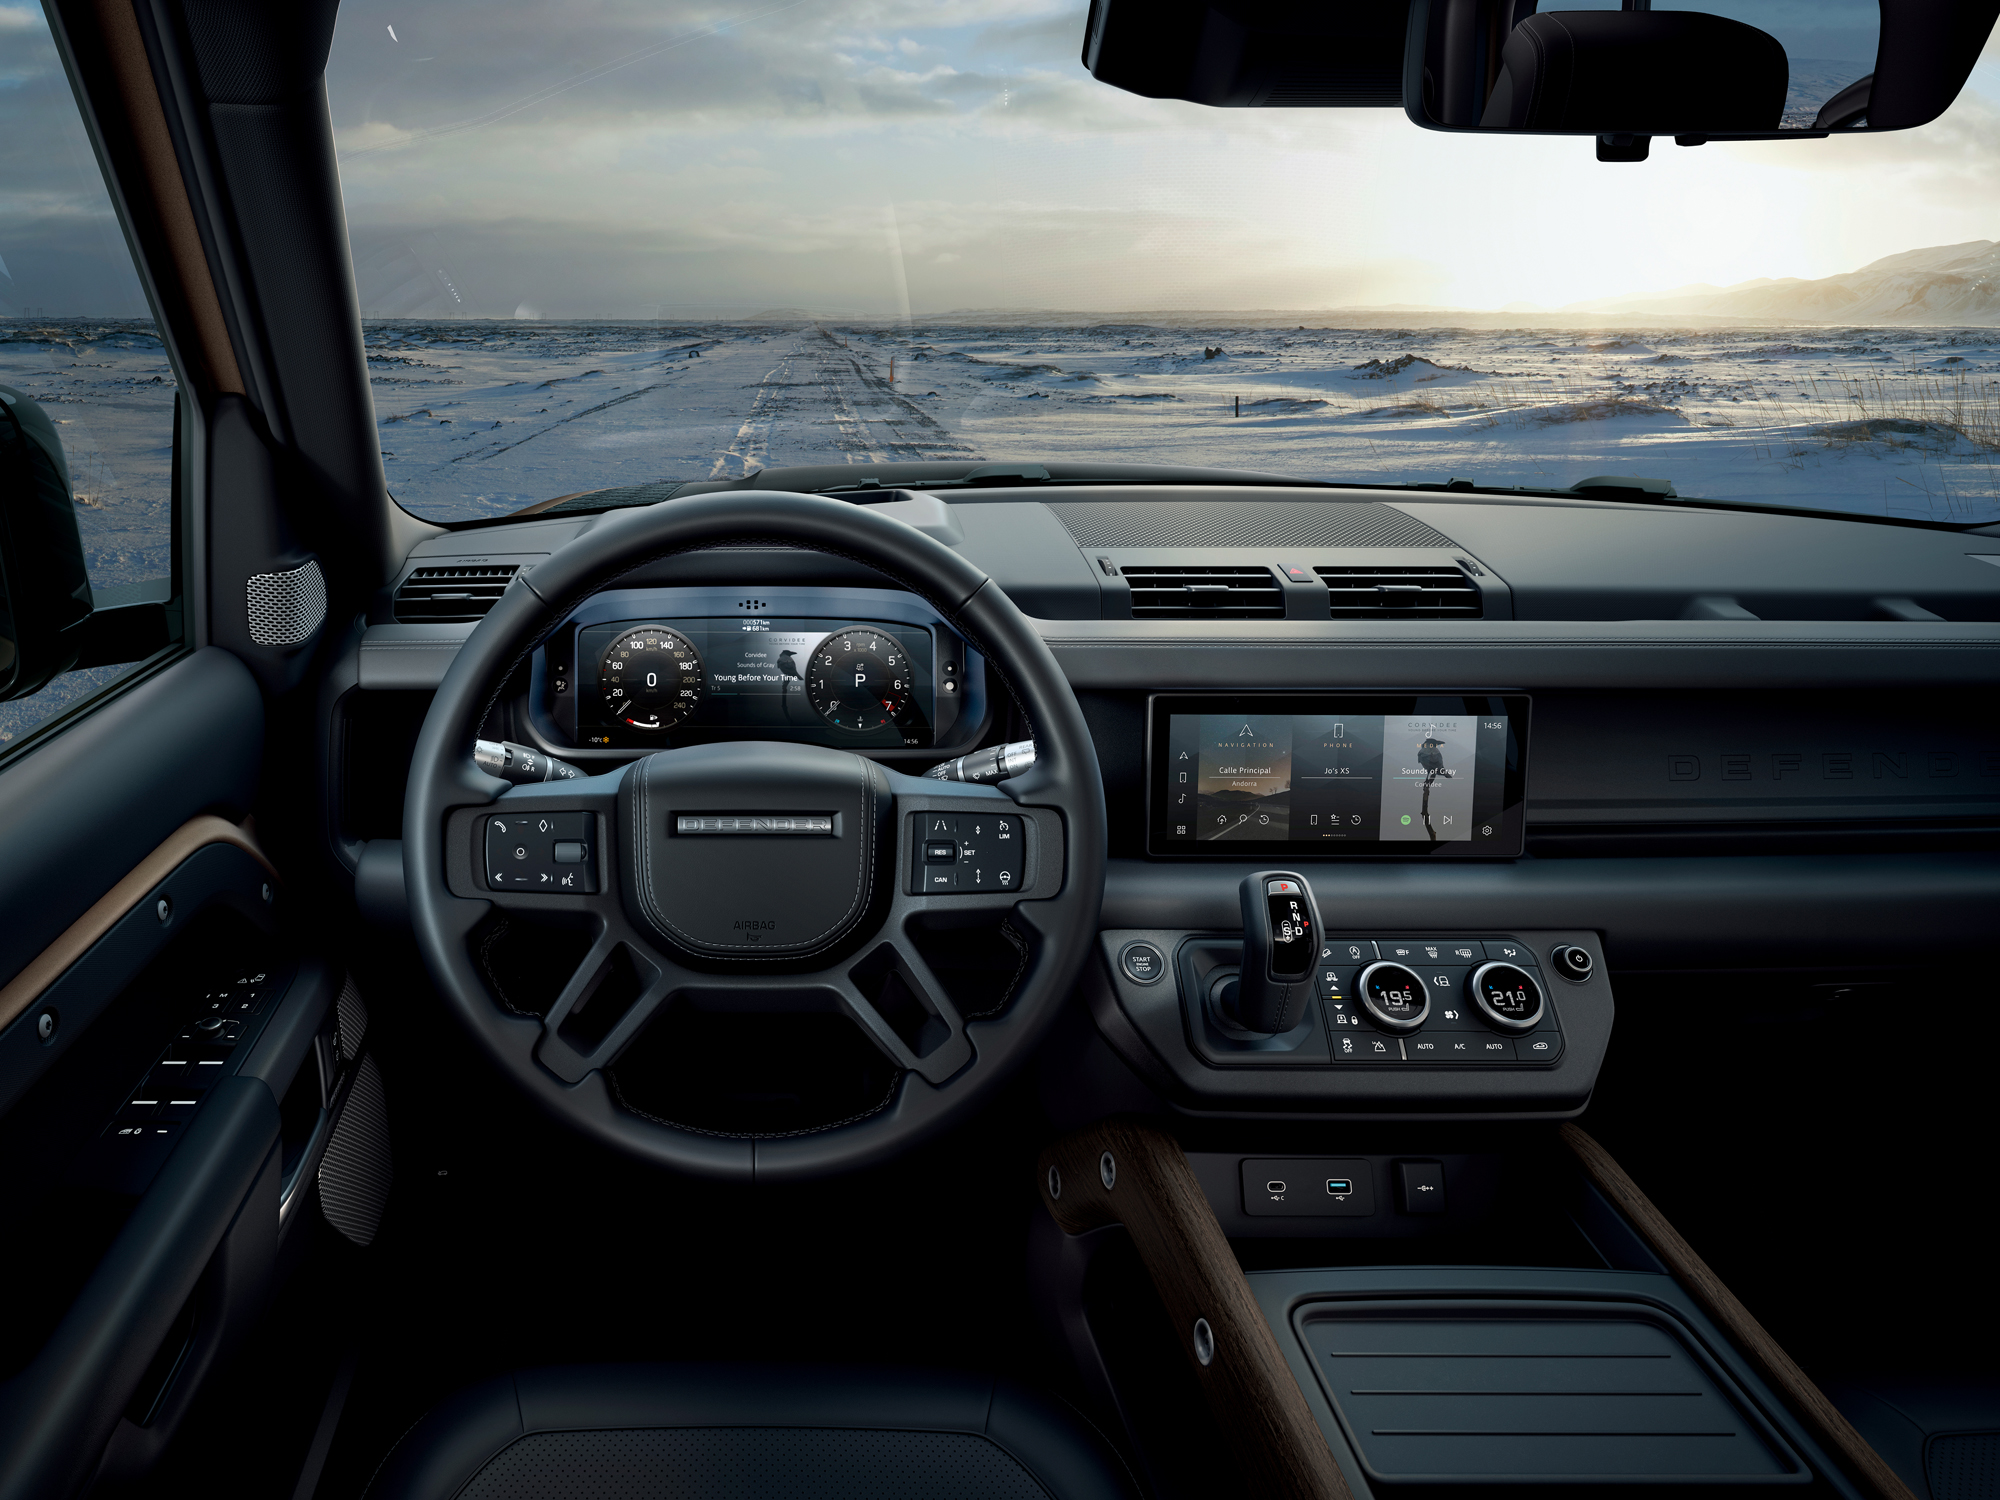 land rover unveils new defender interior image.jpg (1.47 MB)